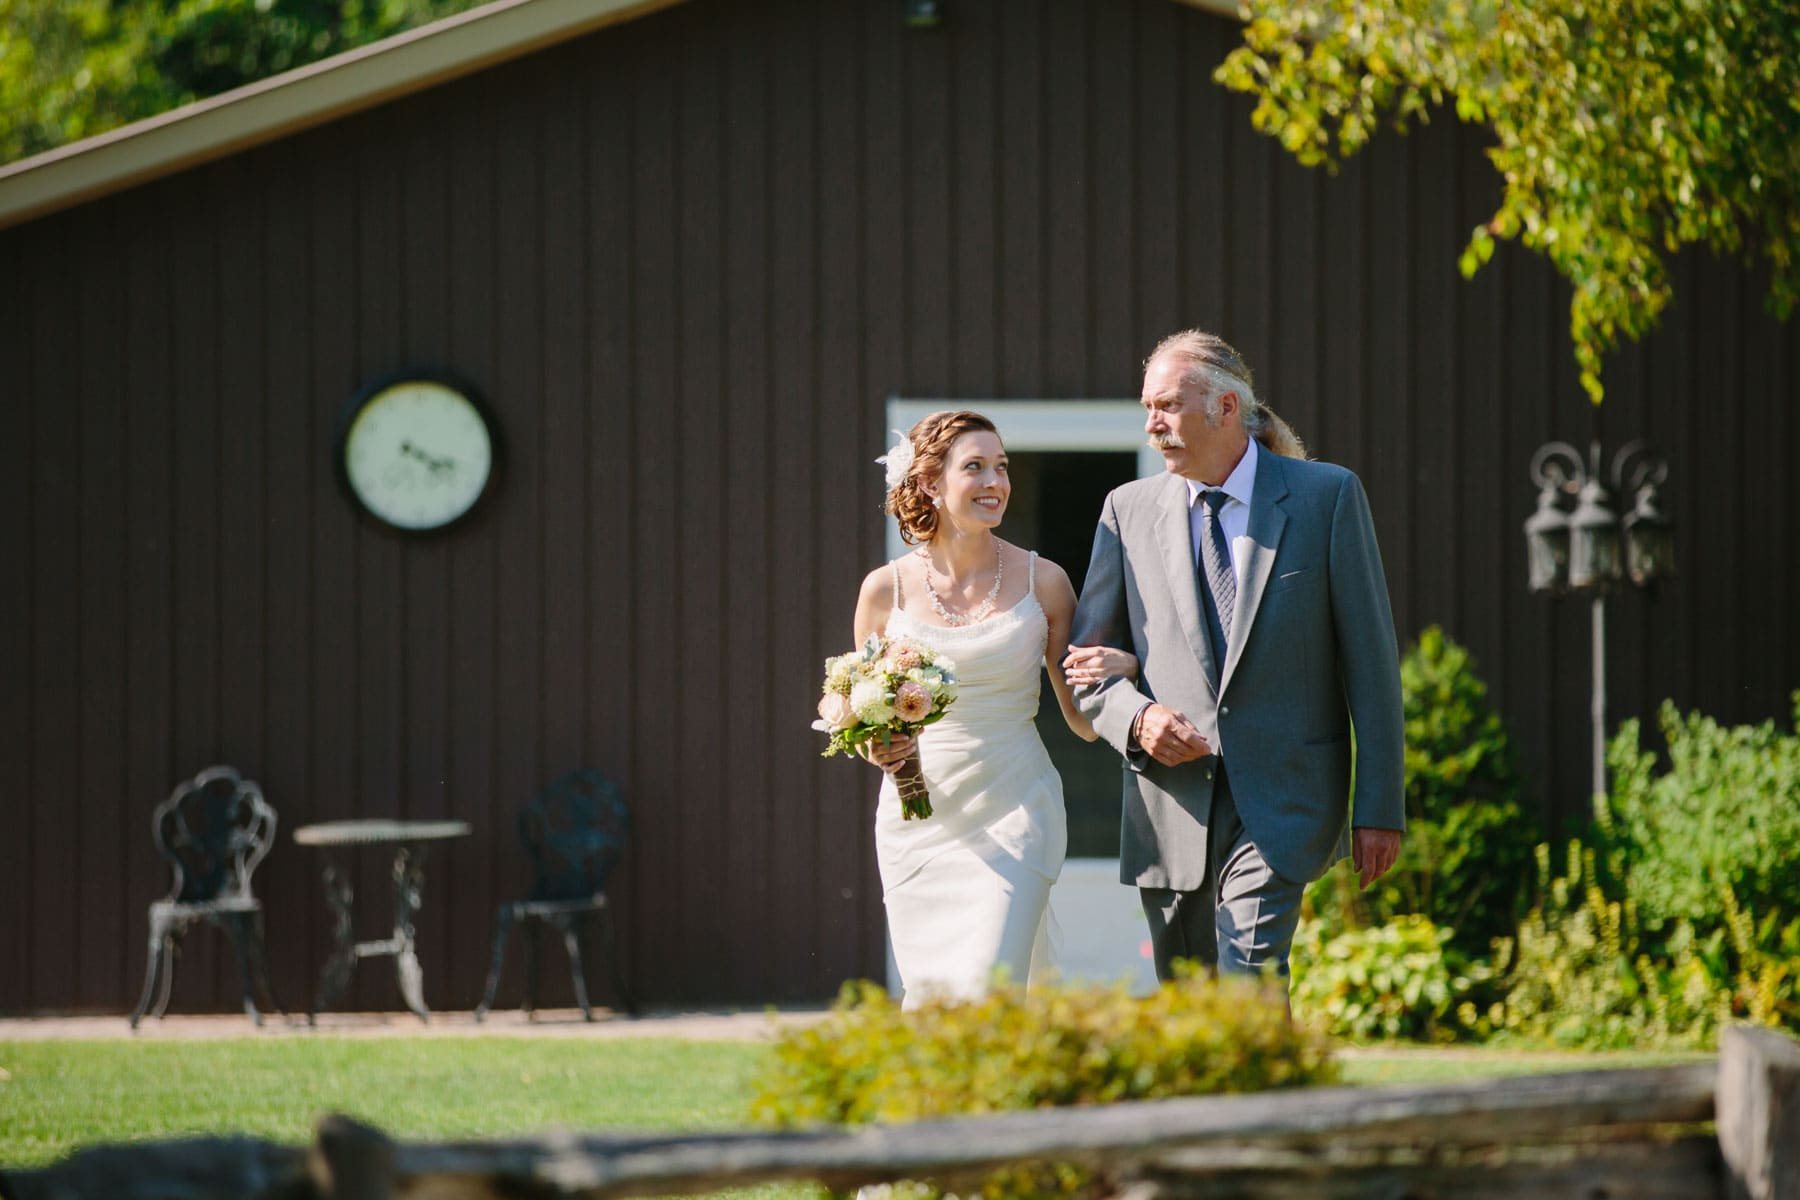 Bride looks at father as he walks her towards the wedding ceremony location in these outdoor backyard wedding photos.